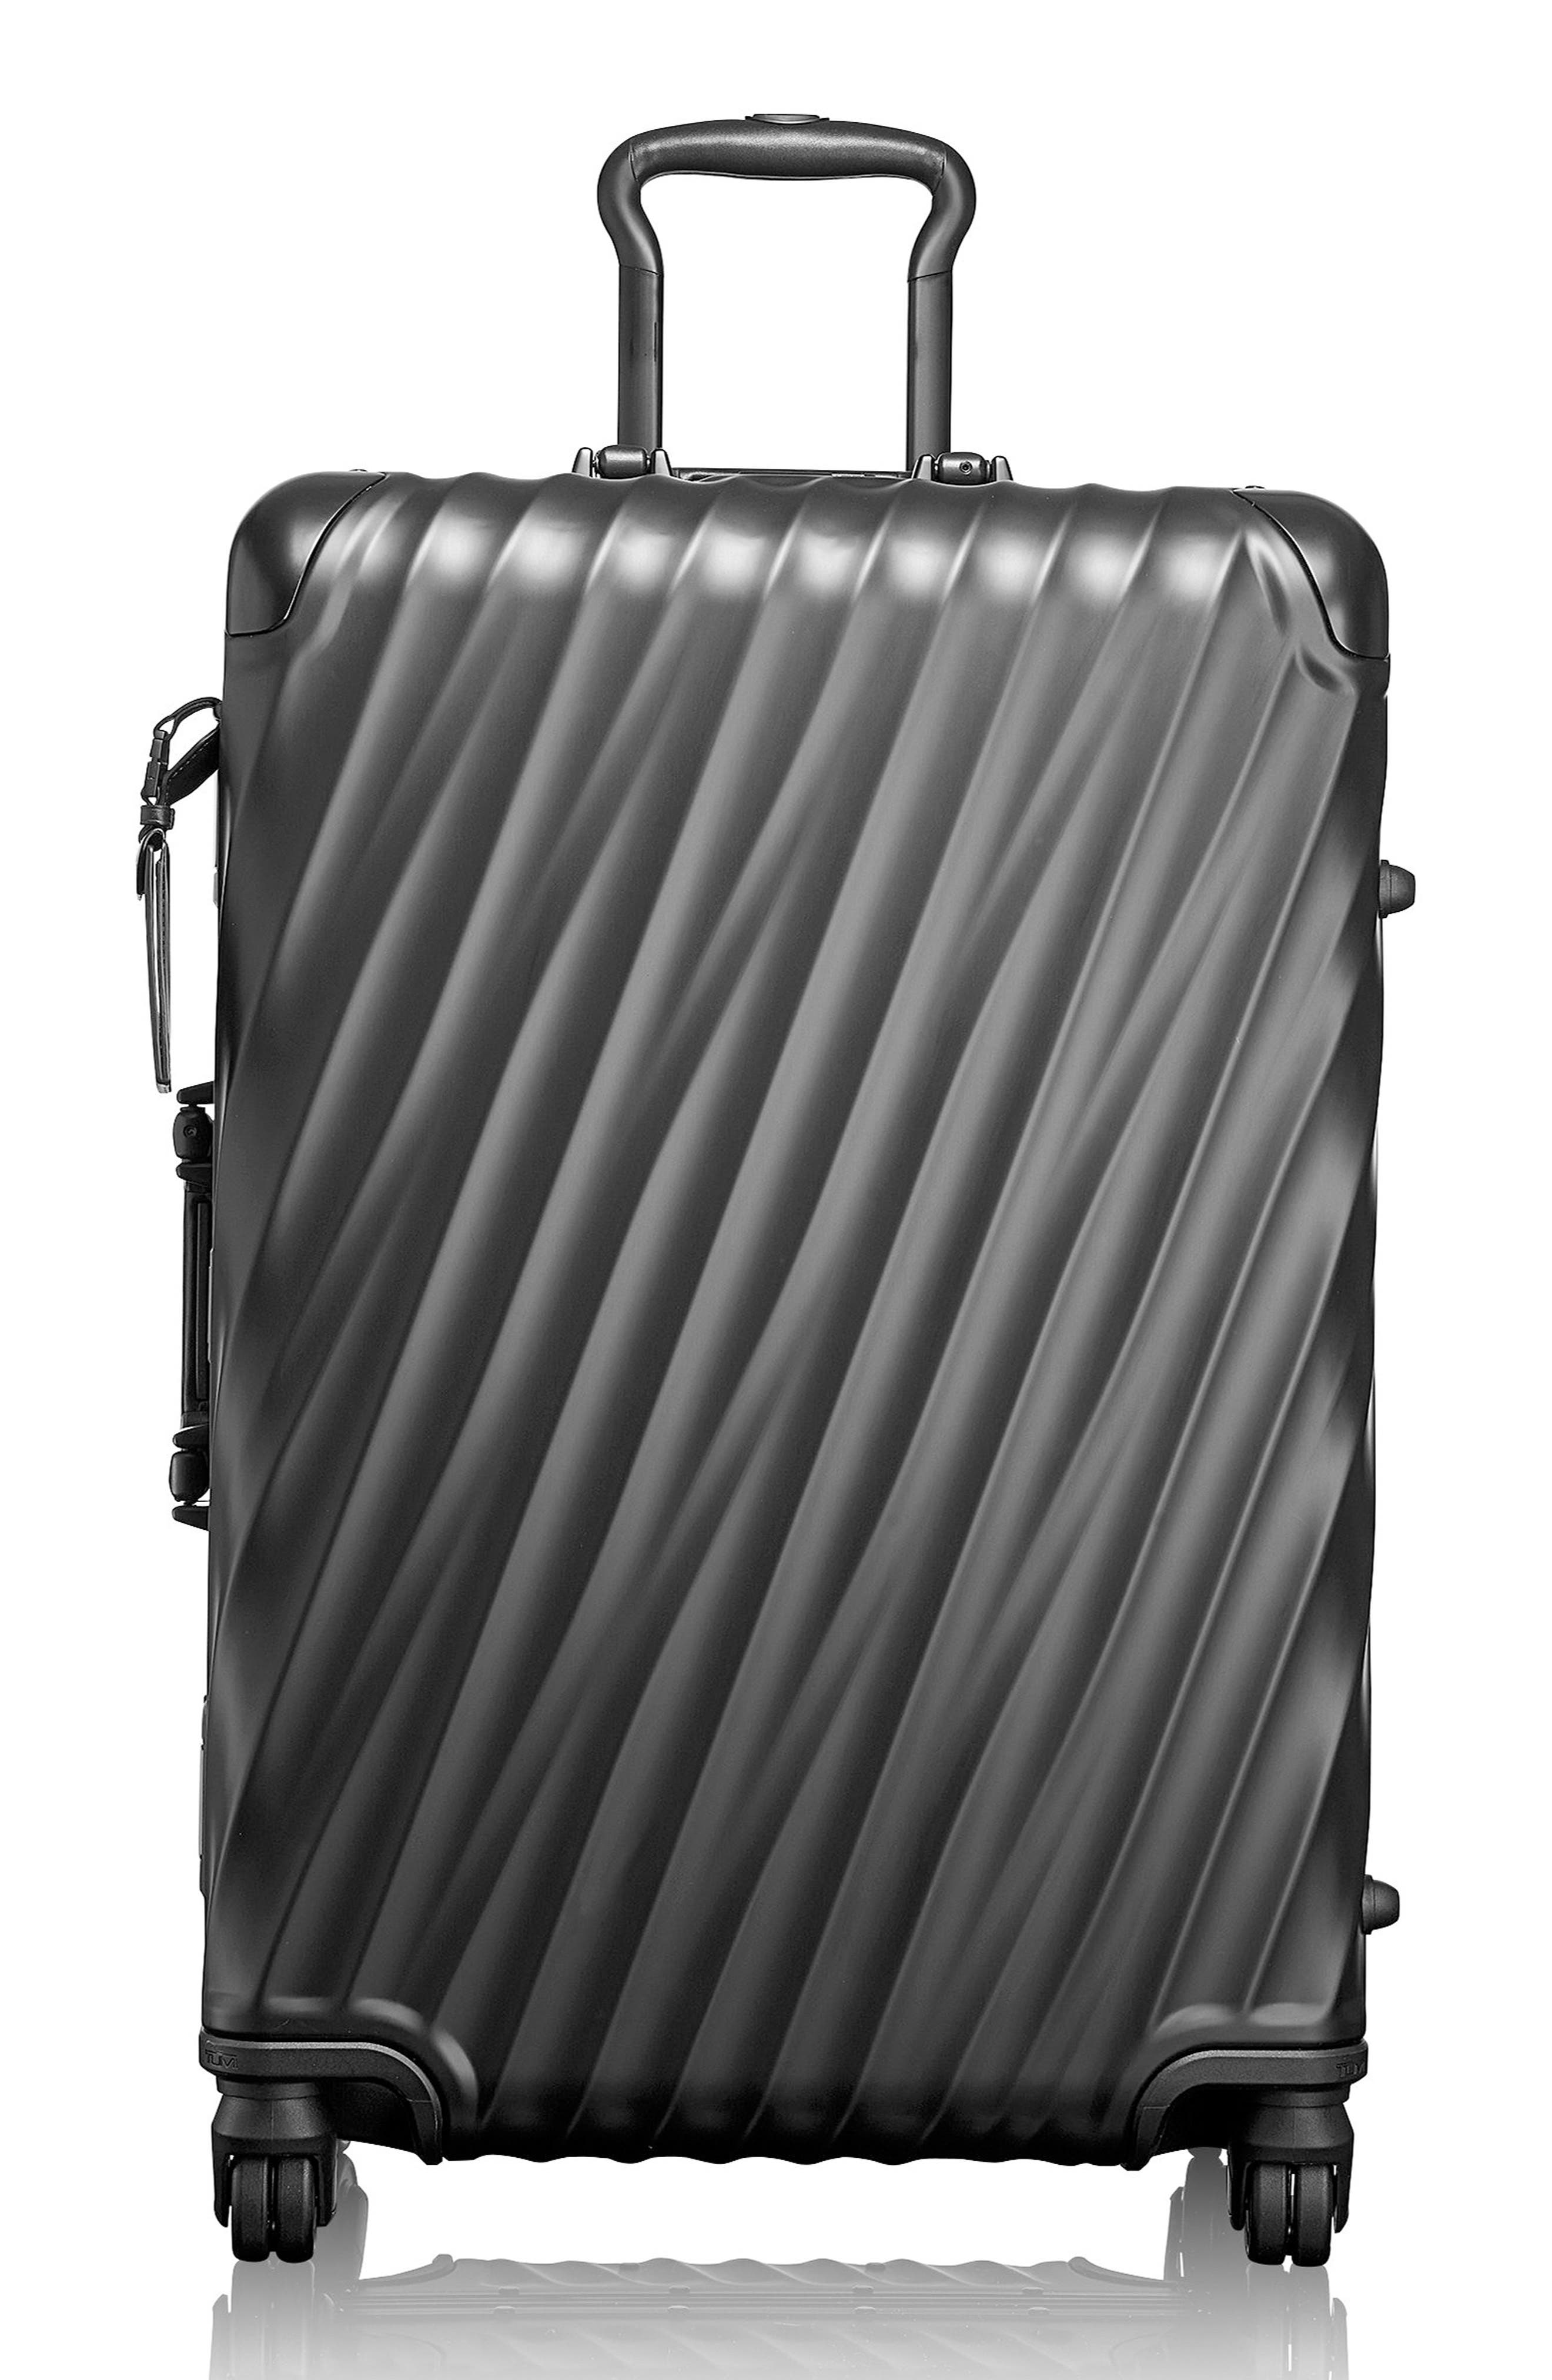 19-Degree Collection 26-Inch Wheeled Aluminum Short Trip Packing Case,                             Main thumbnail 1, color,                             MATTE BLACK